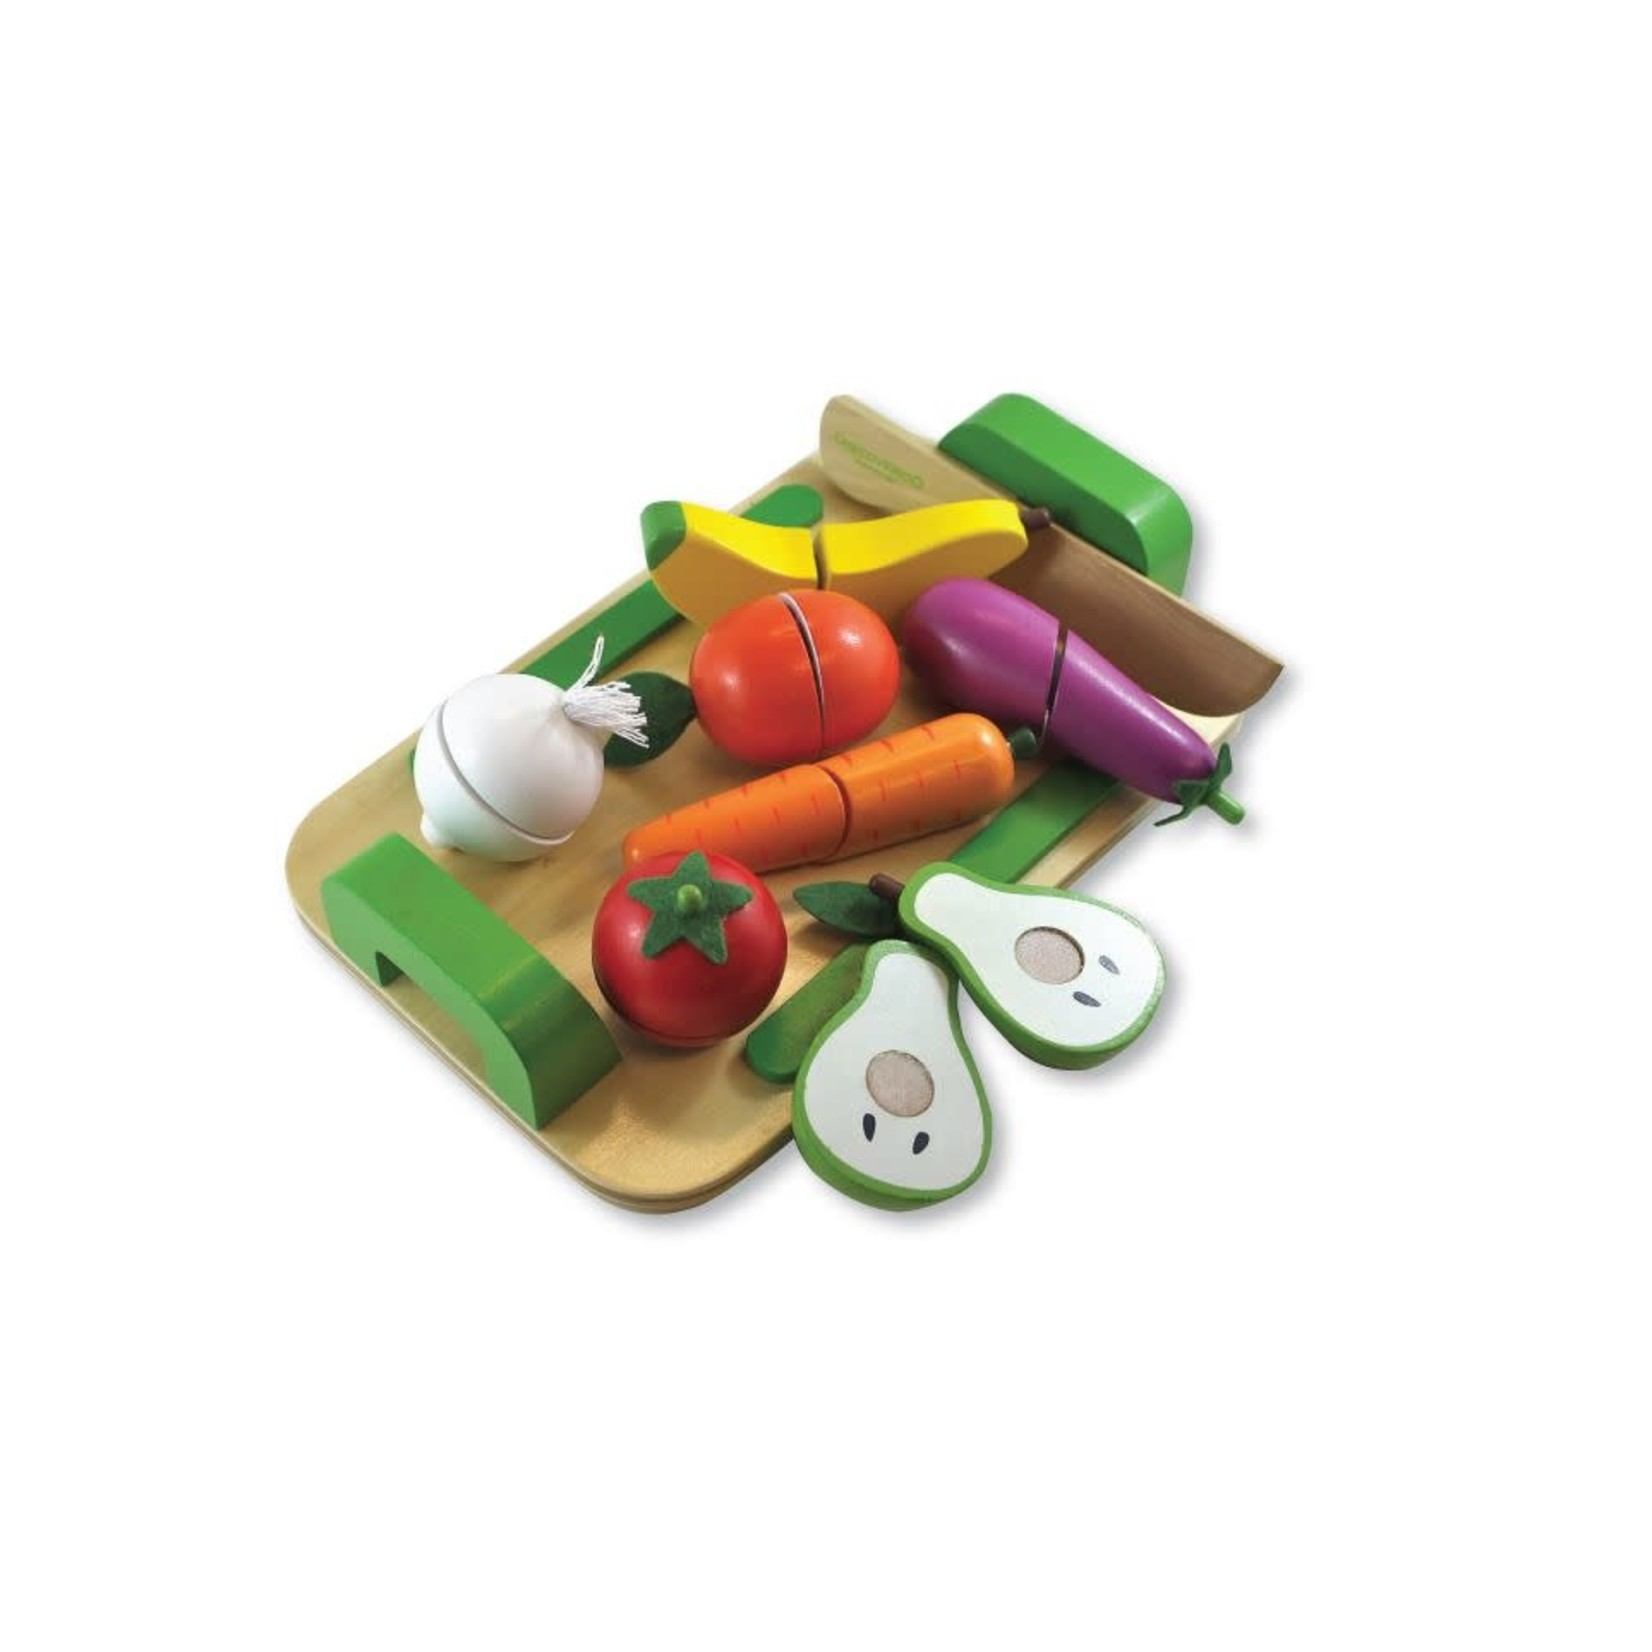 Baby Brands Discoveroo: Fruit and Veg Set